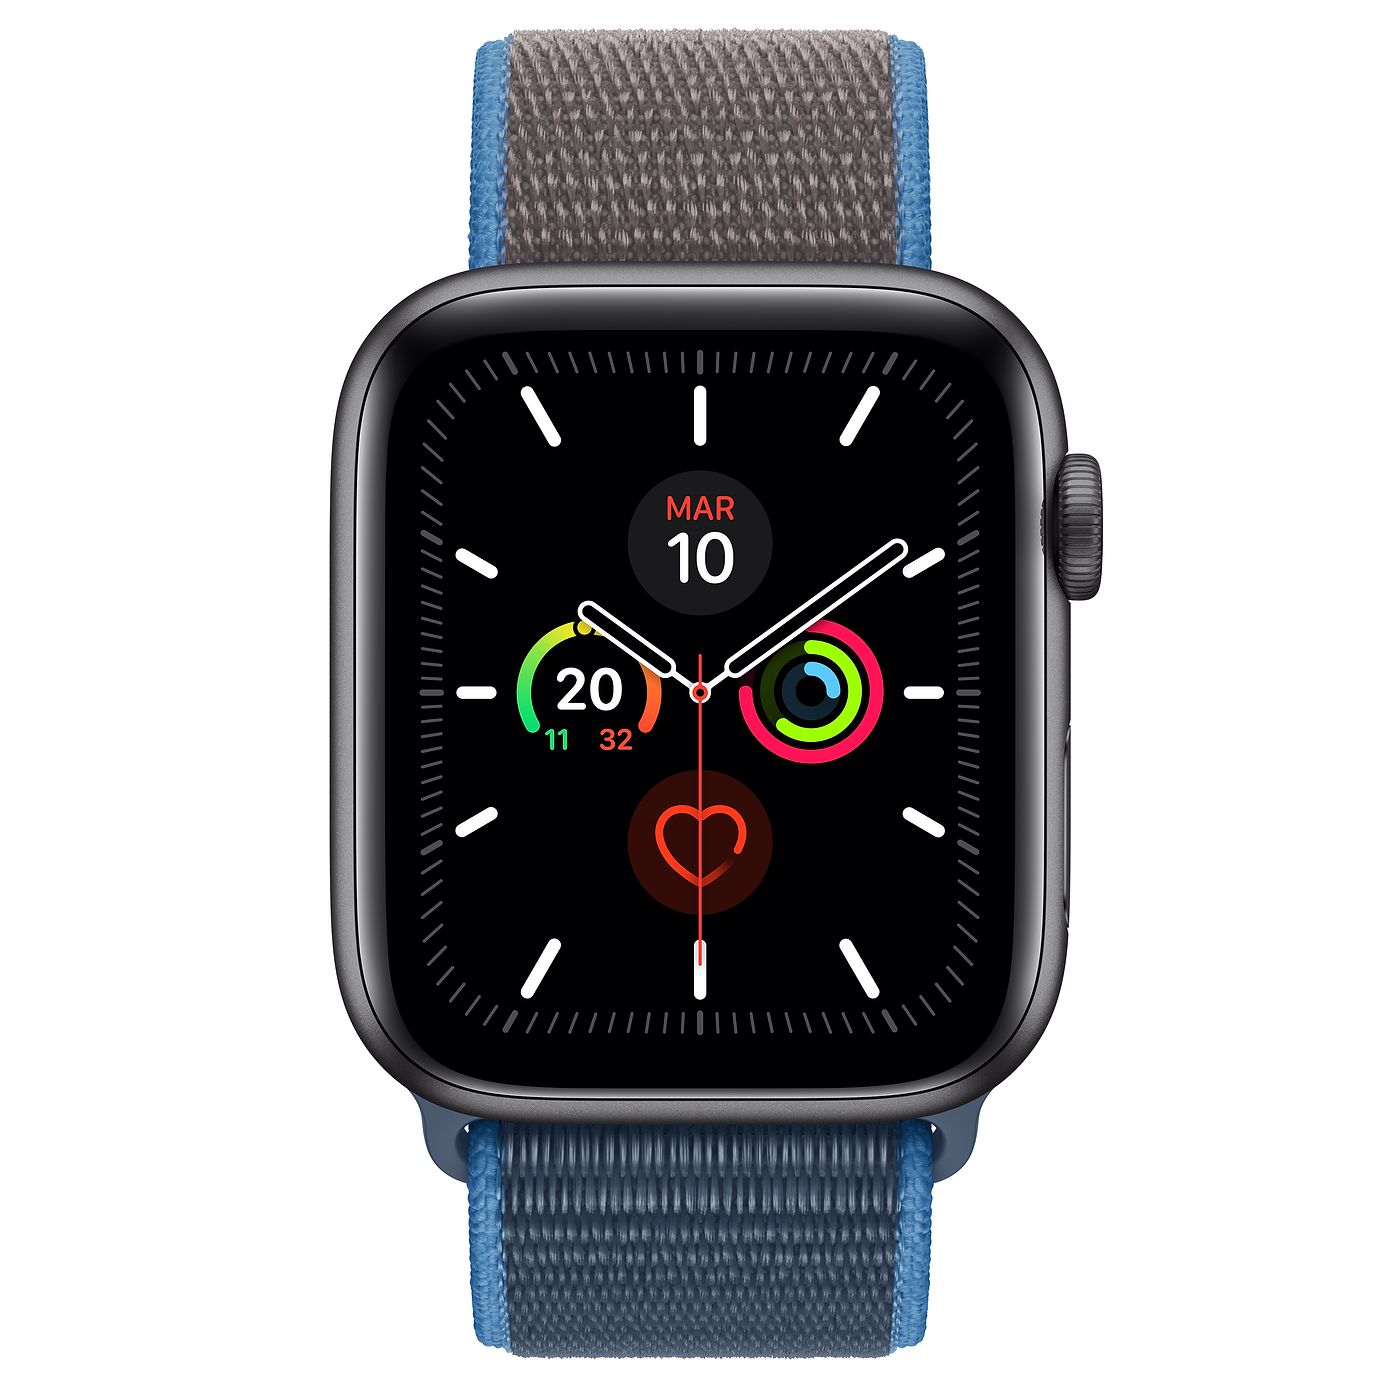 MXMW2_VW_PFwatch-44-alum-spacegray-nc-5s_VW_PF_WF_CO_GEO_ES